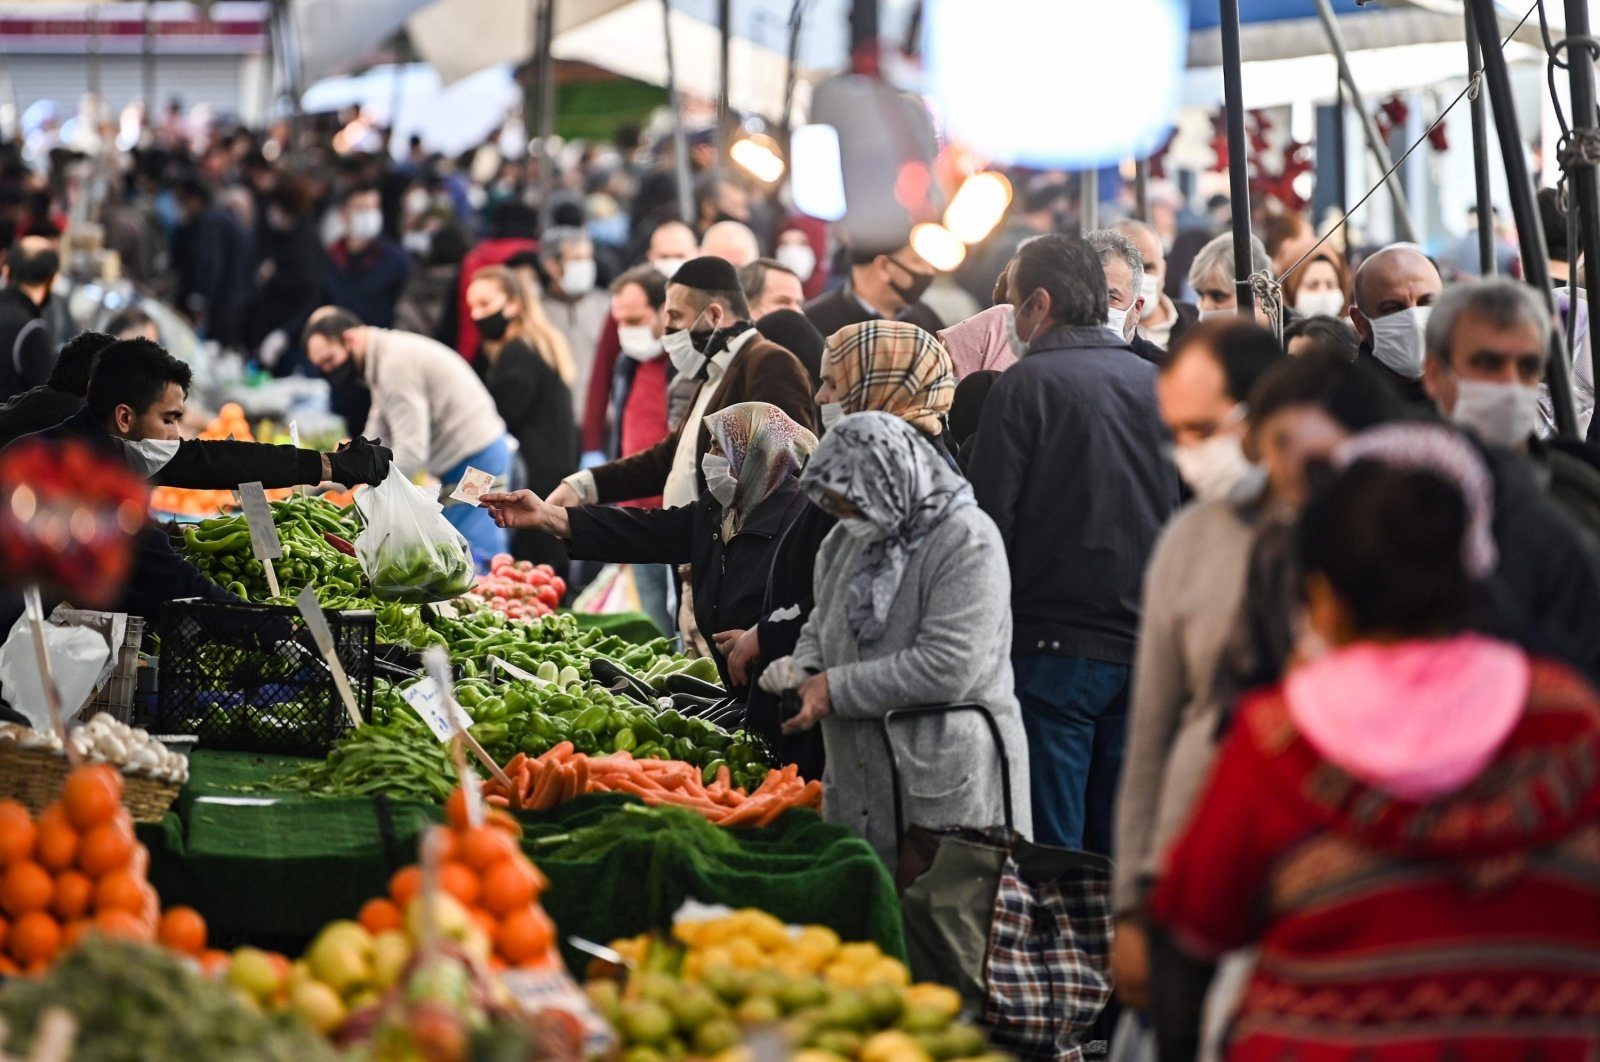 People wearing masks do their grocery shopping at a market in Bayrampaşa, Istanbul, Turkey, April 17, 2020. (AFP Photo)